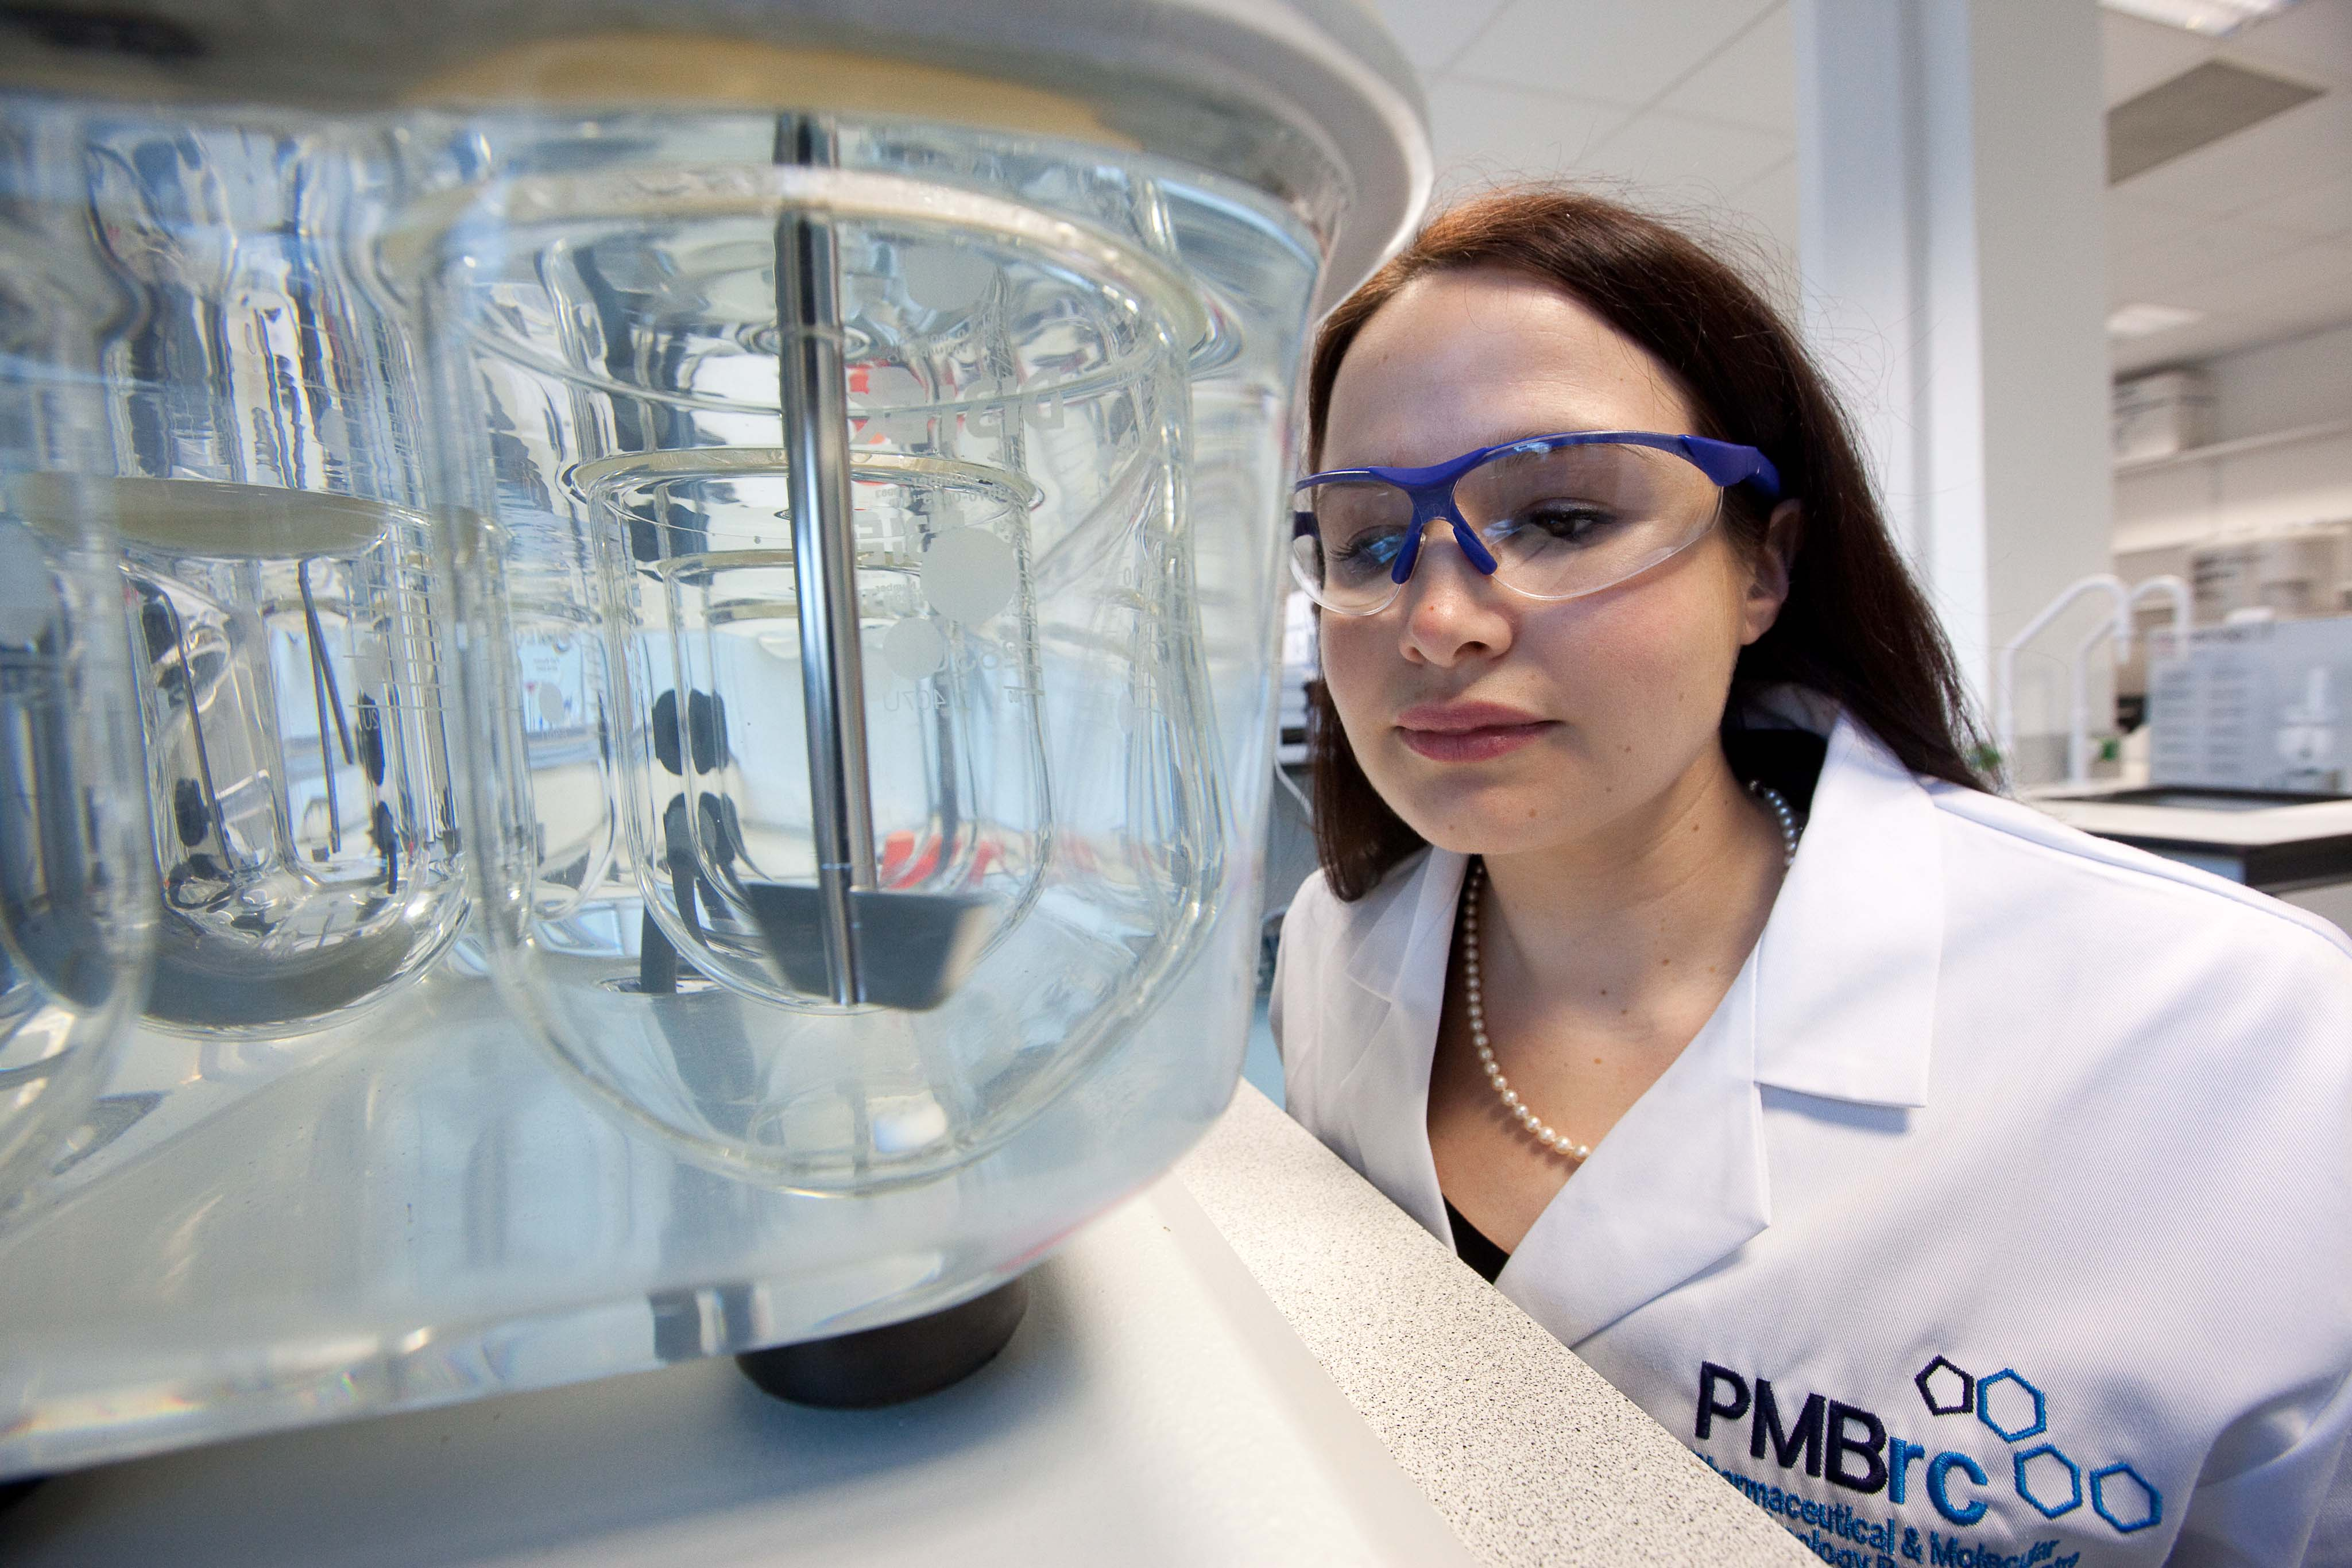 The Pharmaeutical and Molecular Biotechnology Research Centre (PMBRC) have been shortlisted for two Pharma Industry Awards